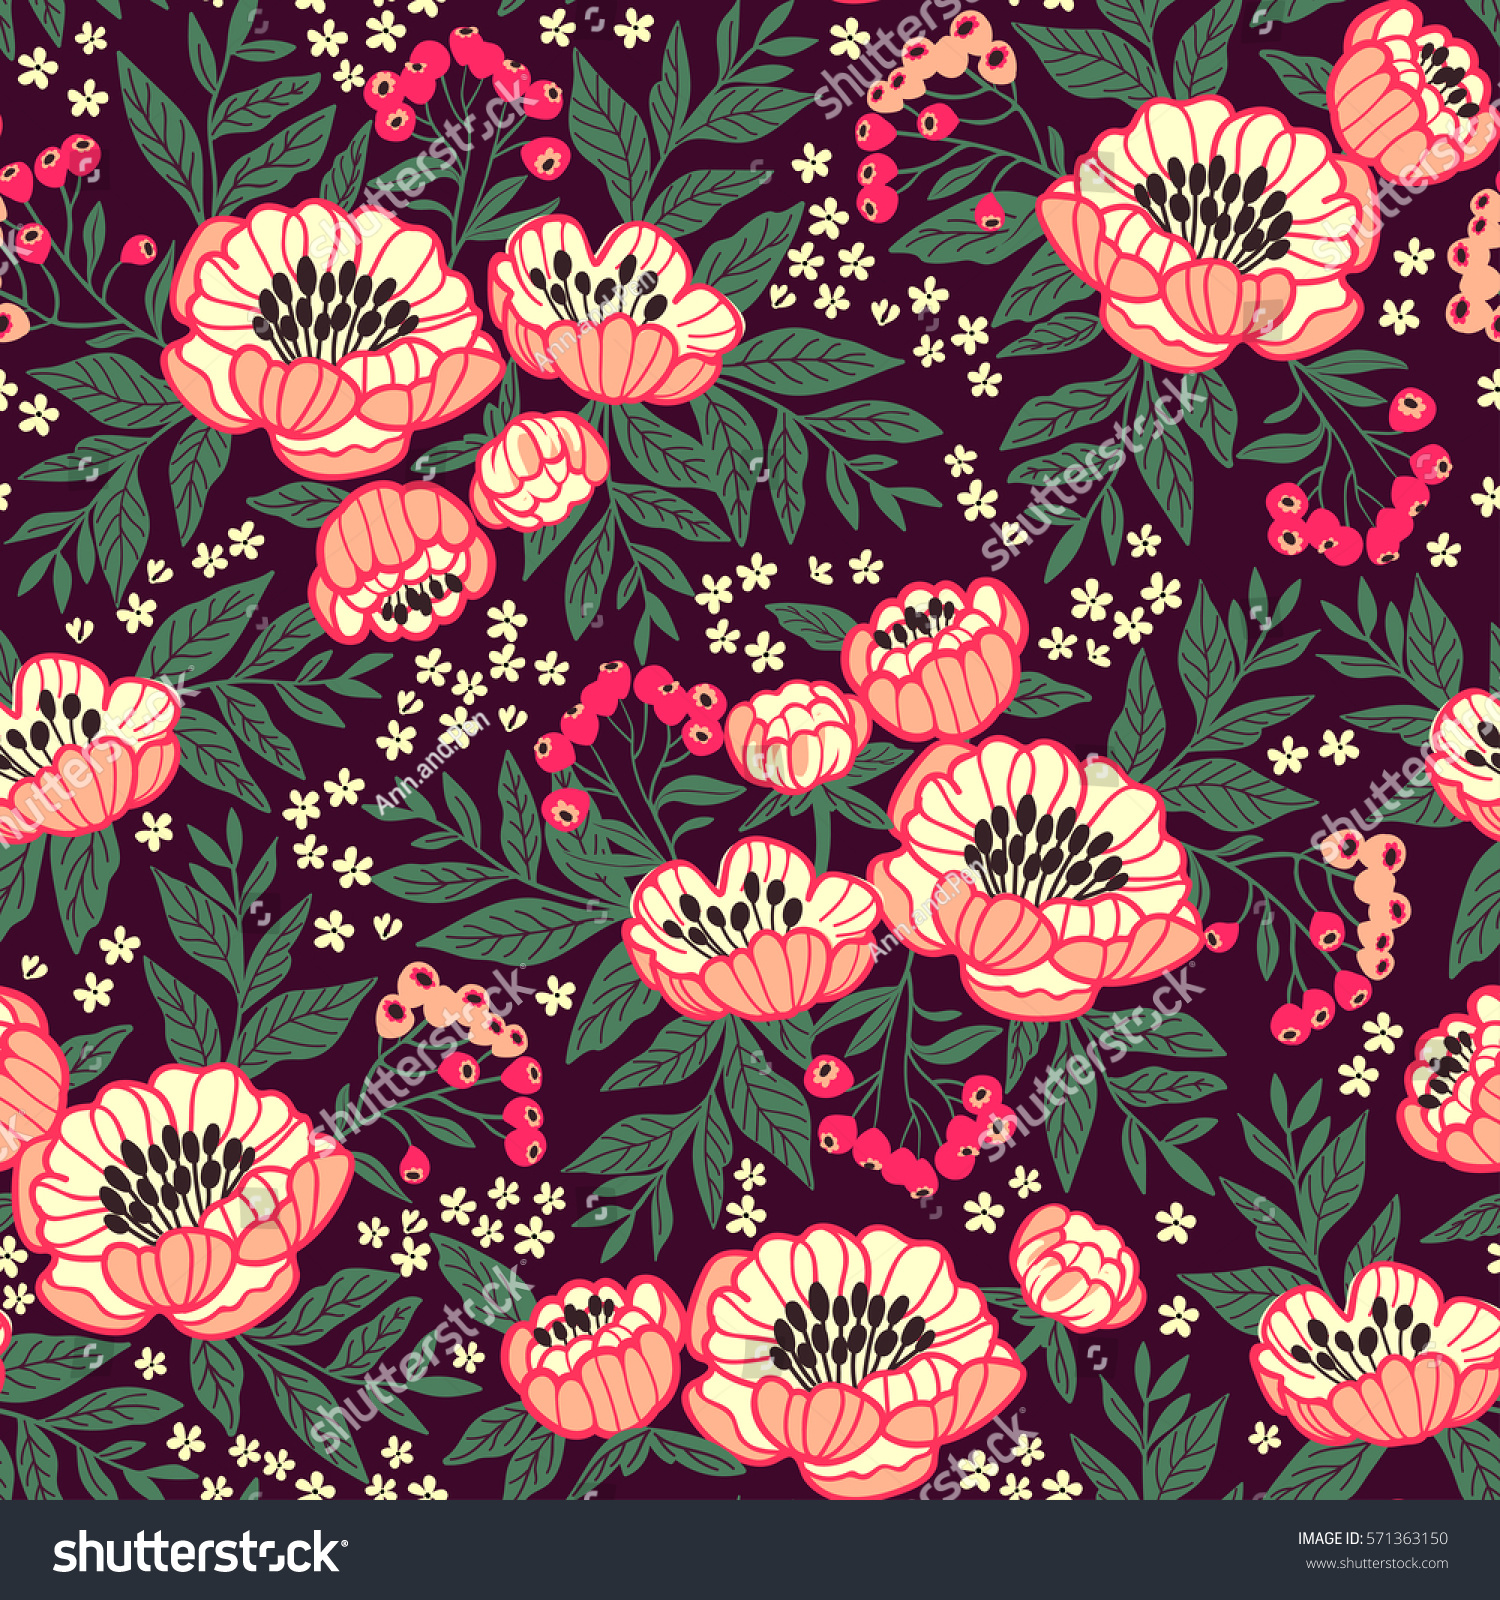 Seamless Floral Pattern Peonies Peony Flowers Stock Vector 571363150